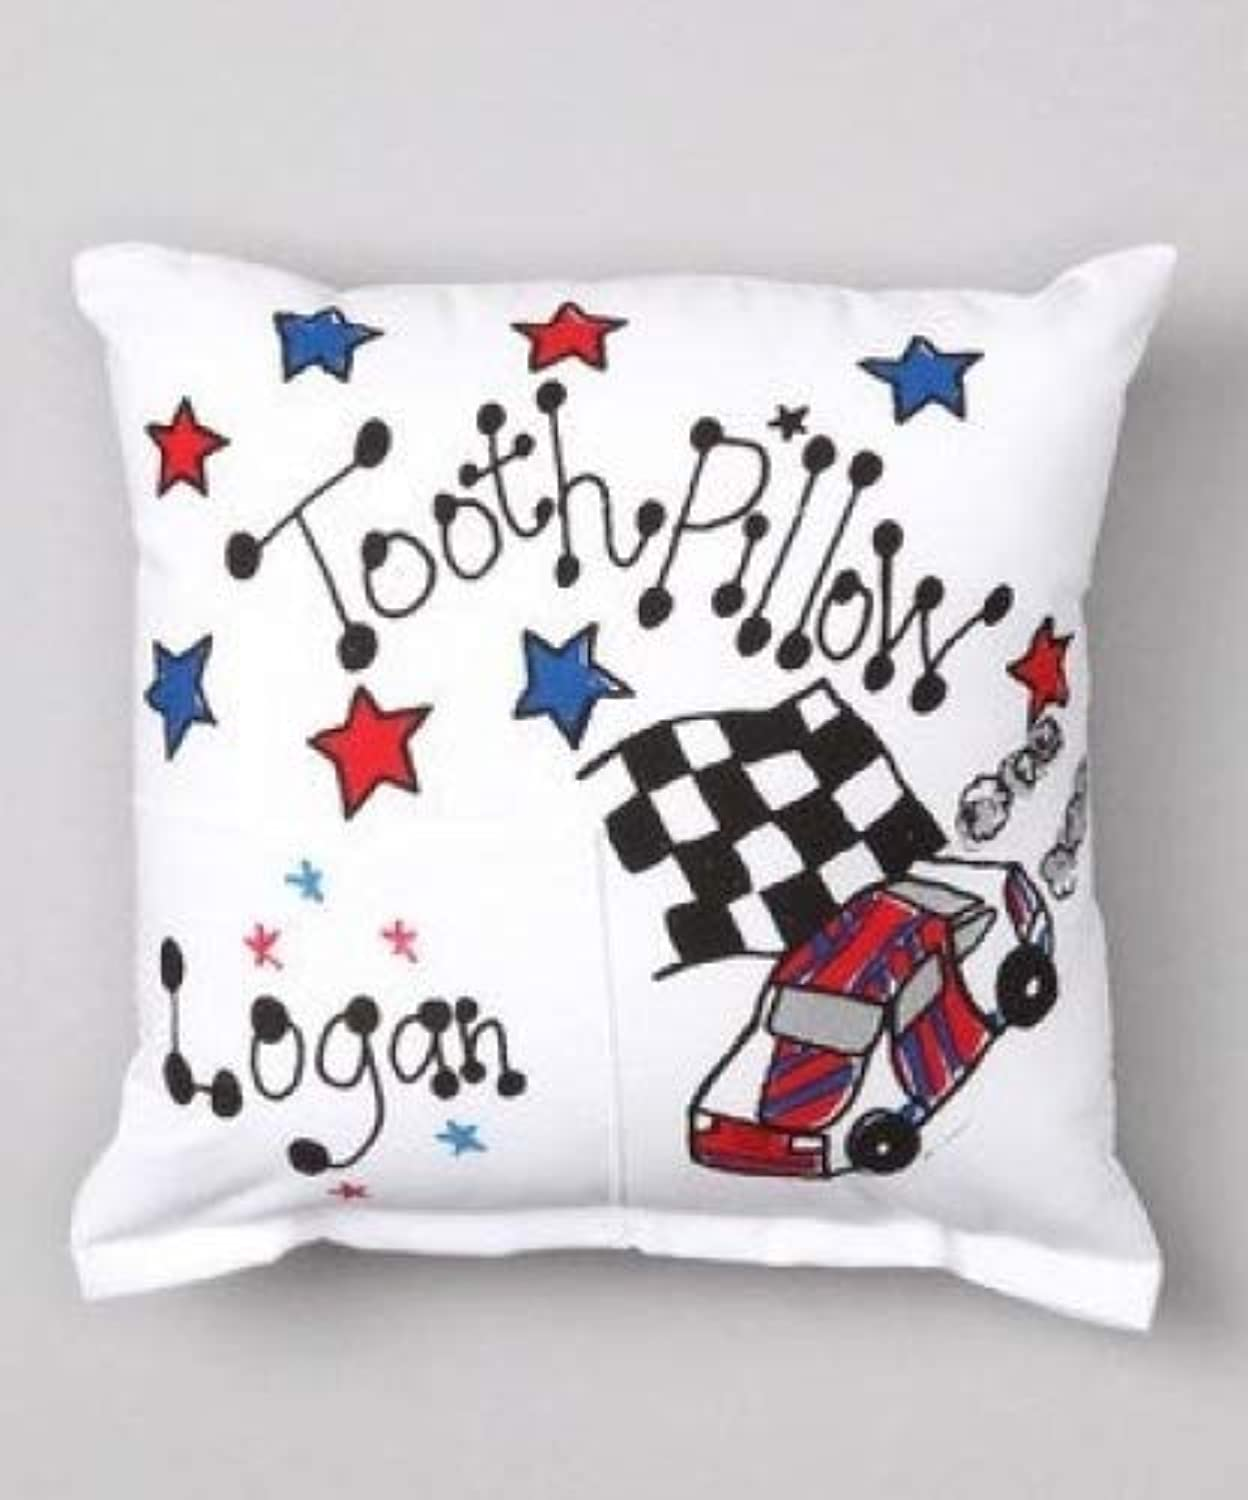 Bunnies and Bows Personalized Tooth Fairy Pillow  Race Car  6.5  x 6.5  x 2   Handmade in USA